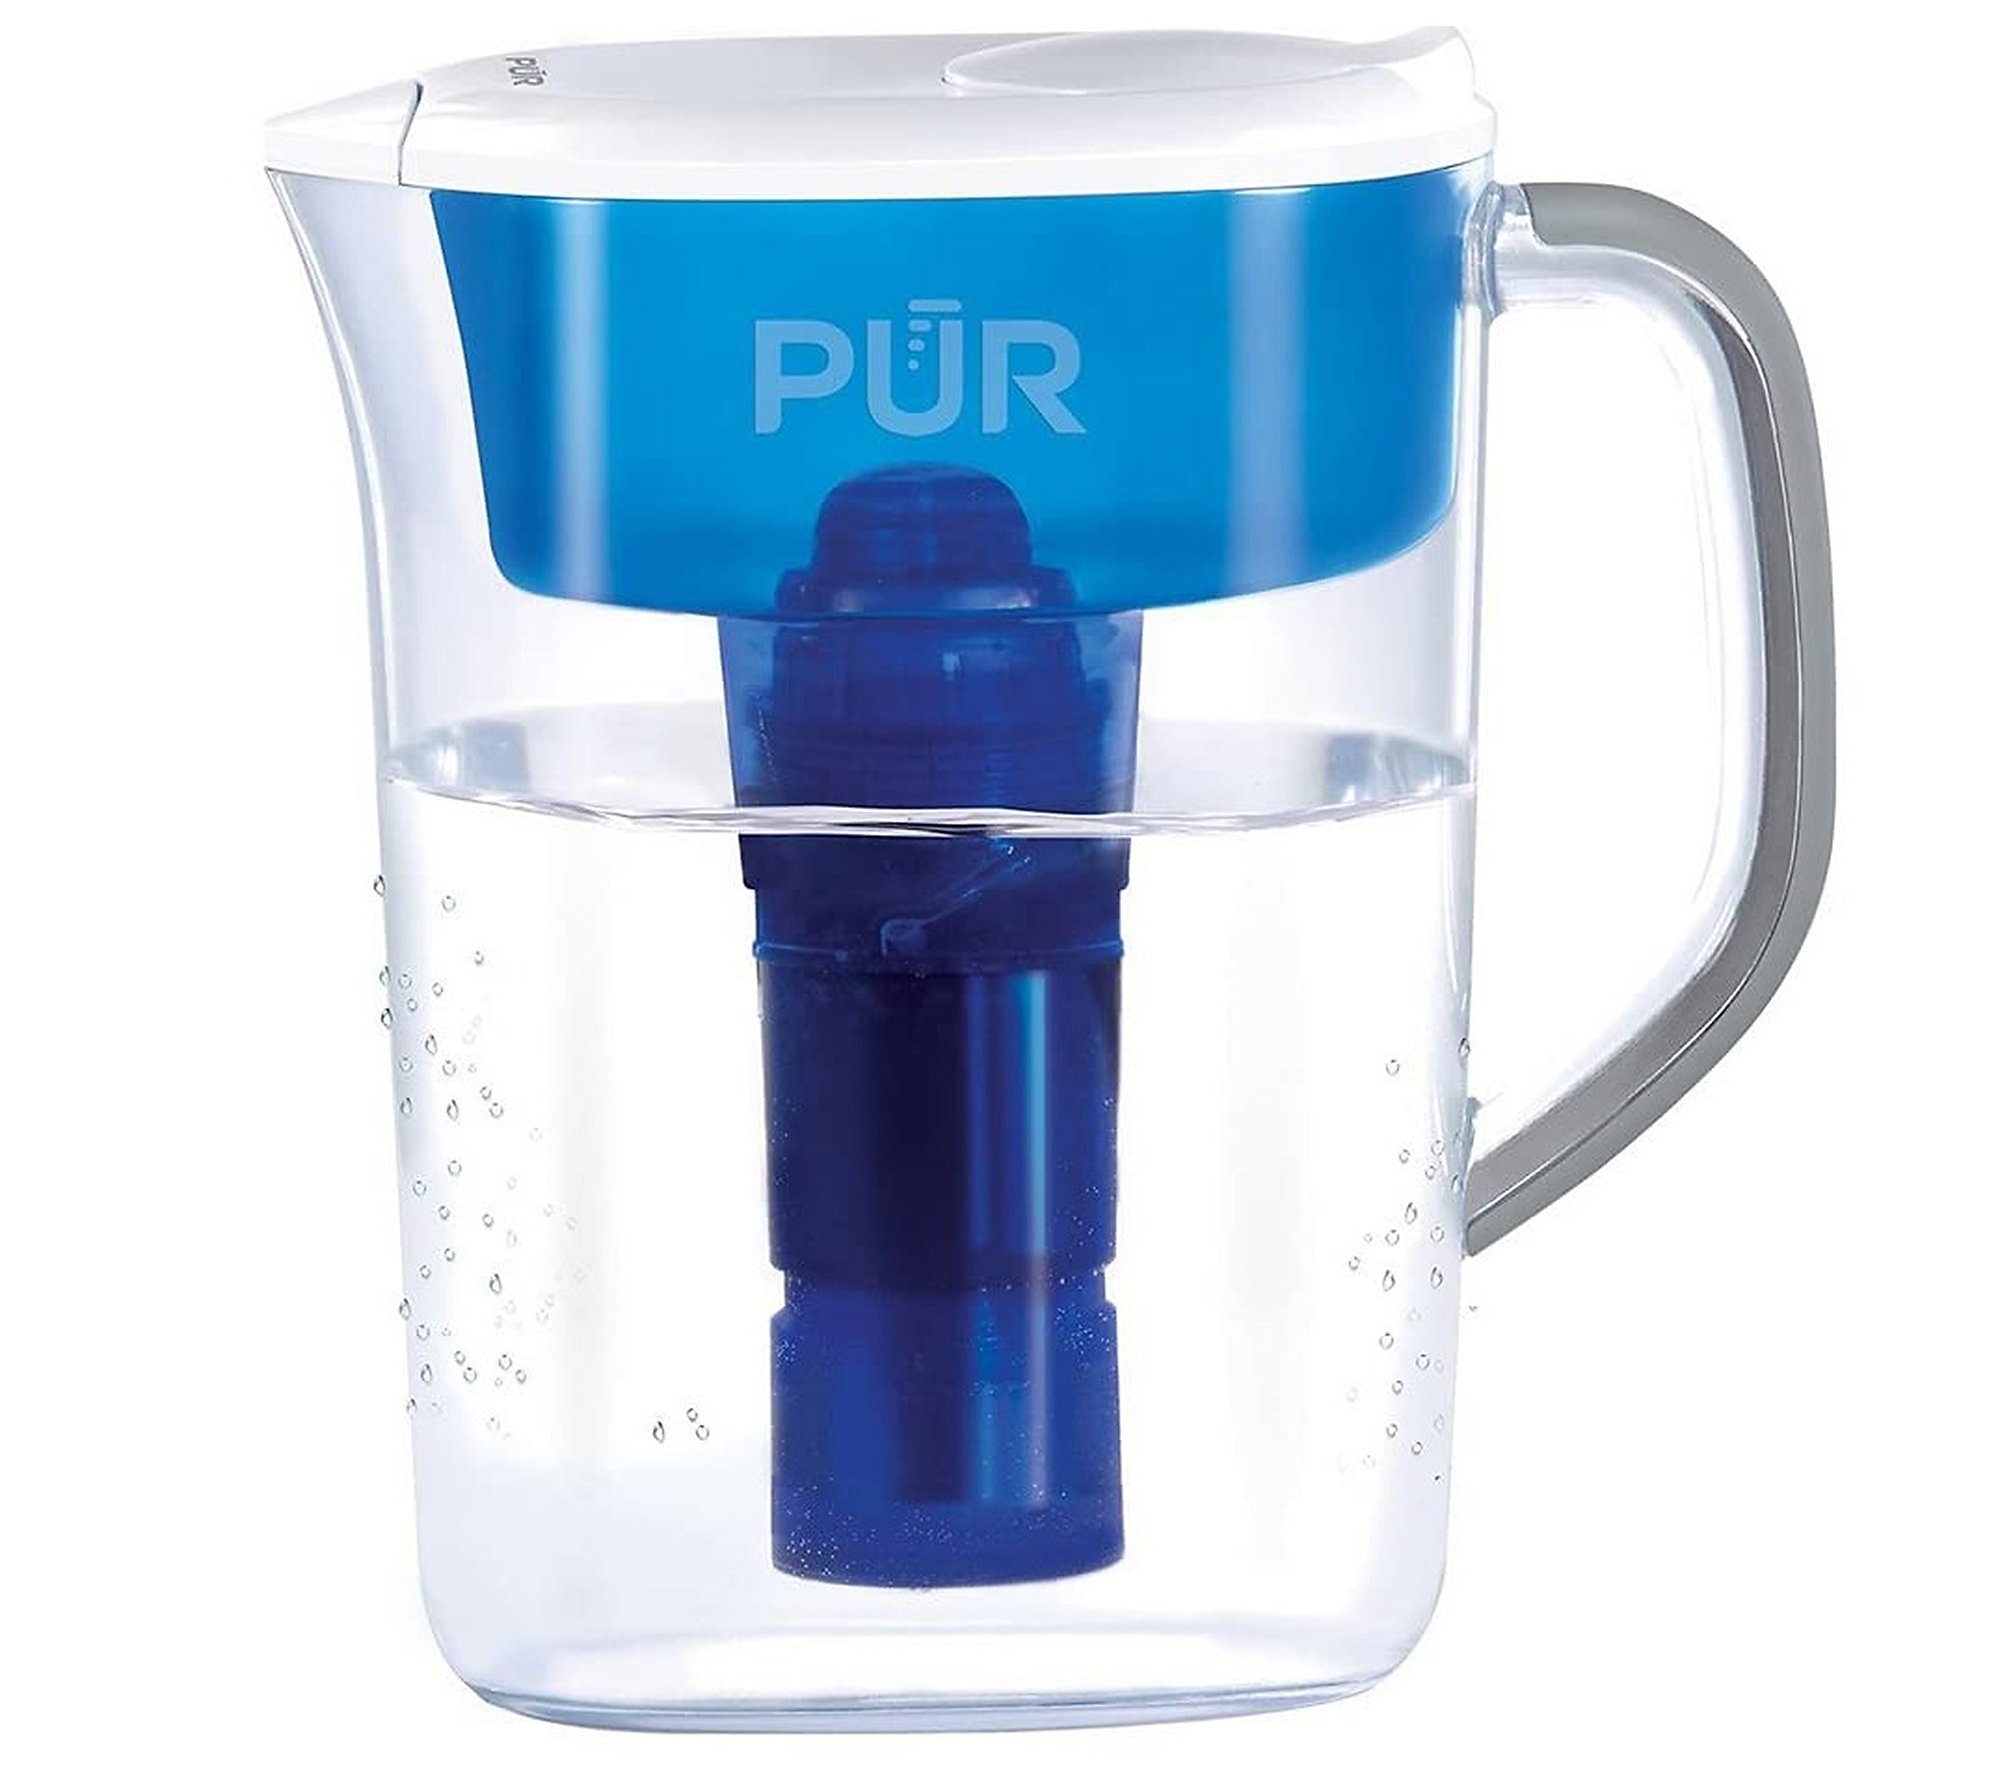 PUR 7 Cup Ultimate Pitcher